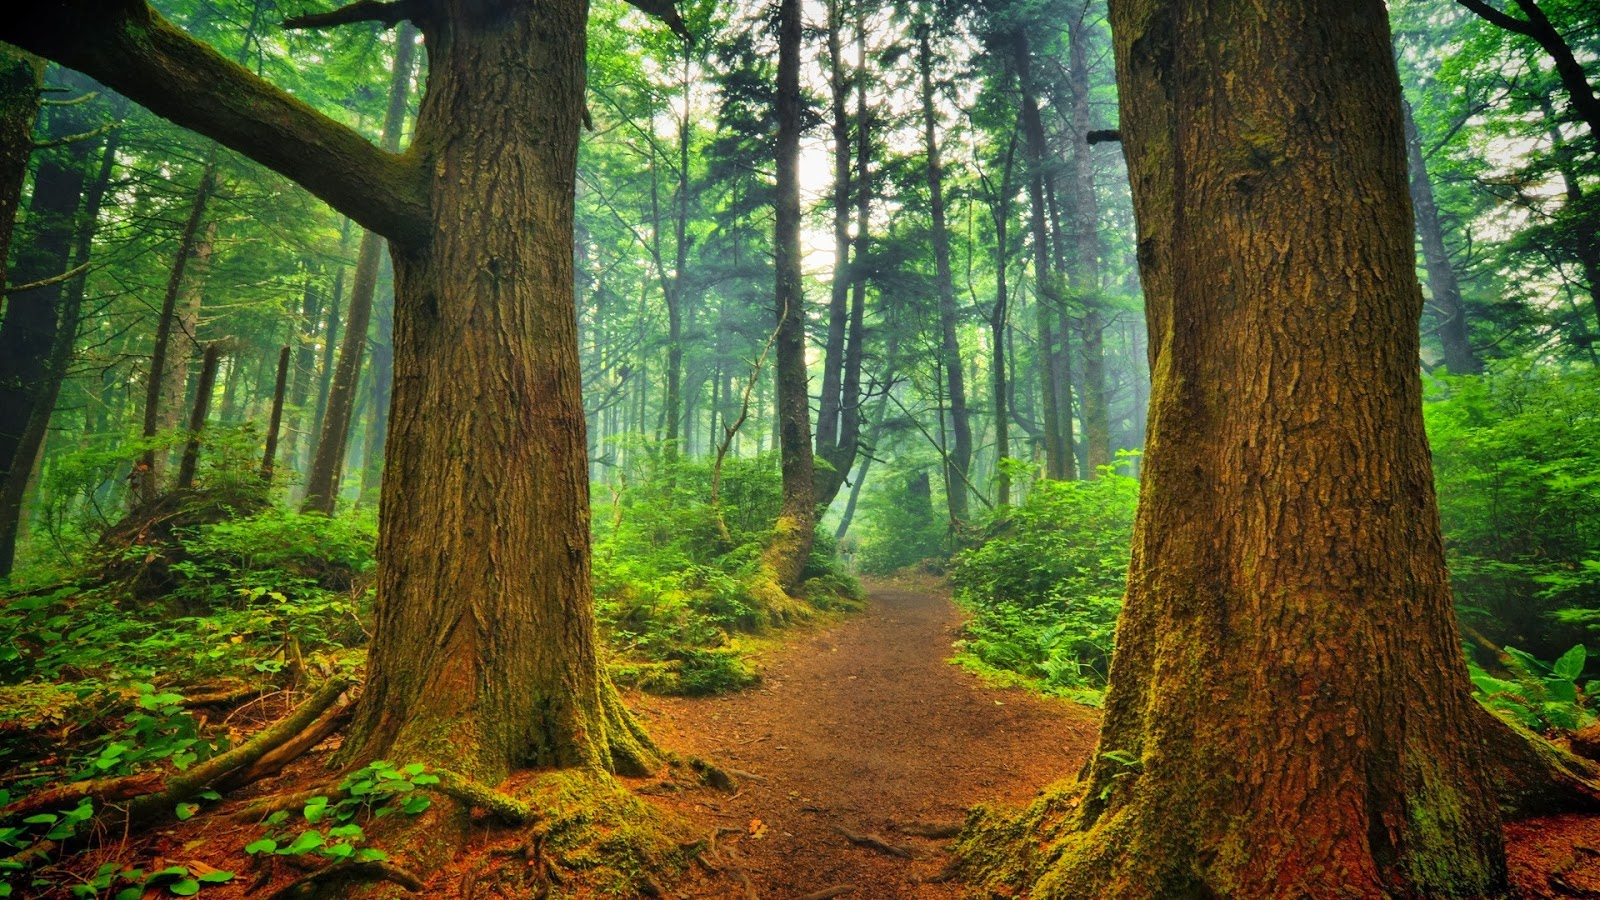 hd wallpapers 1080p forest__002.jpg